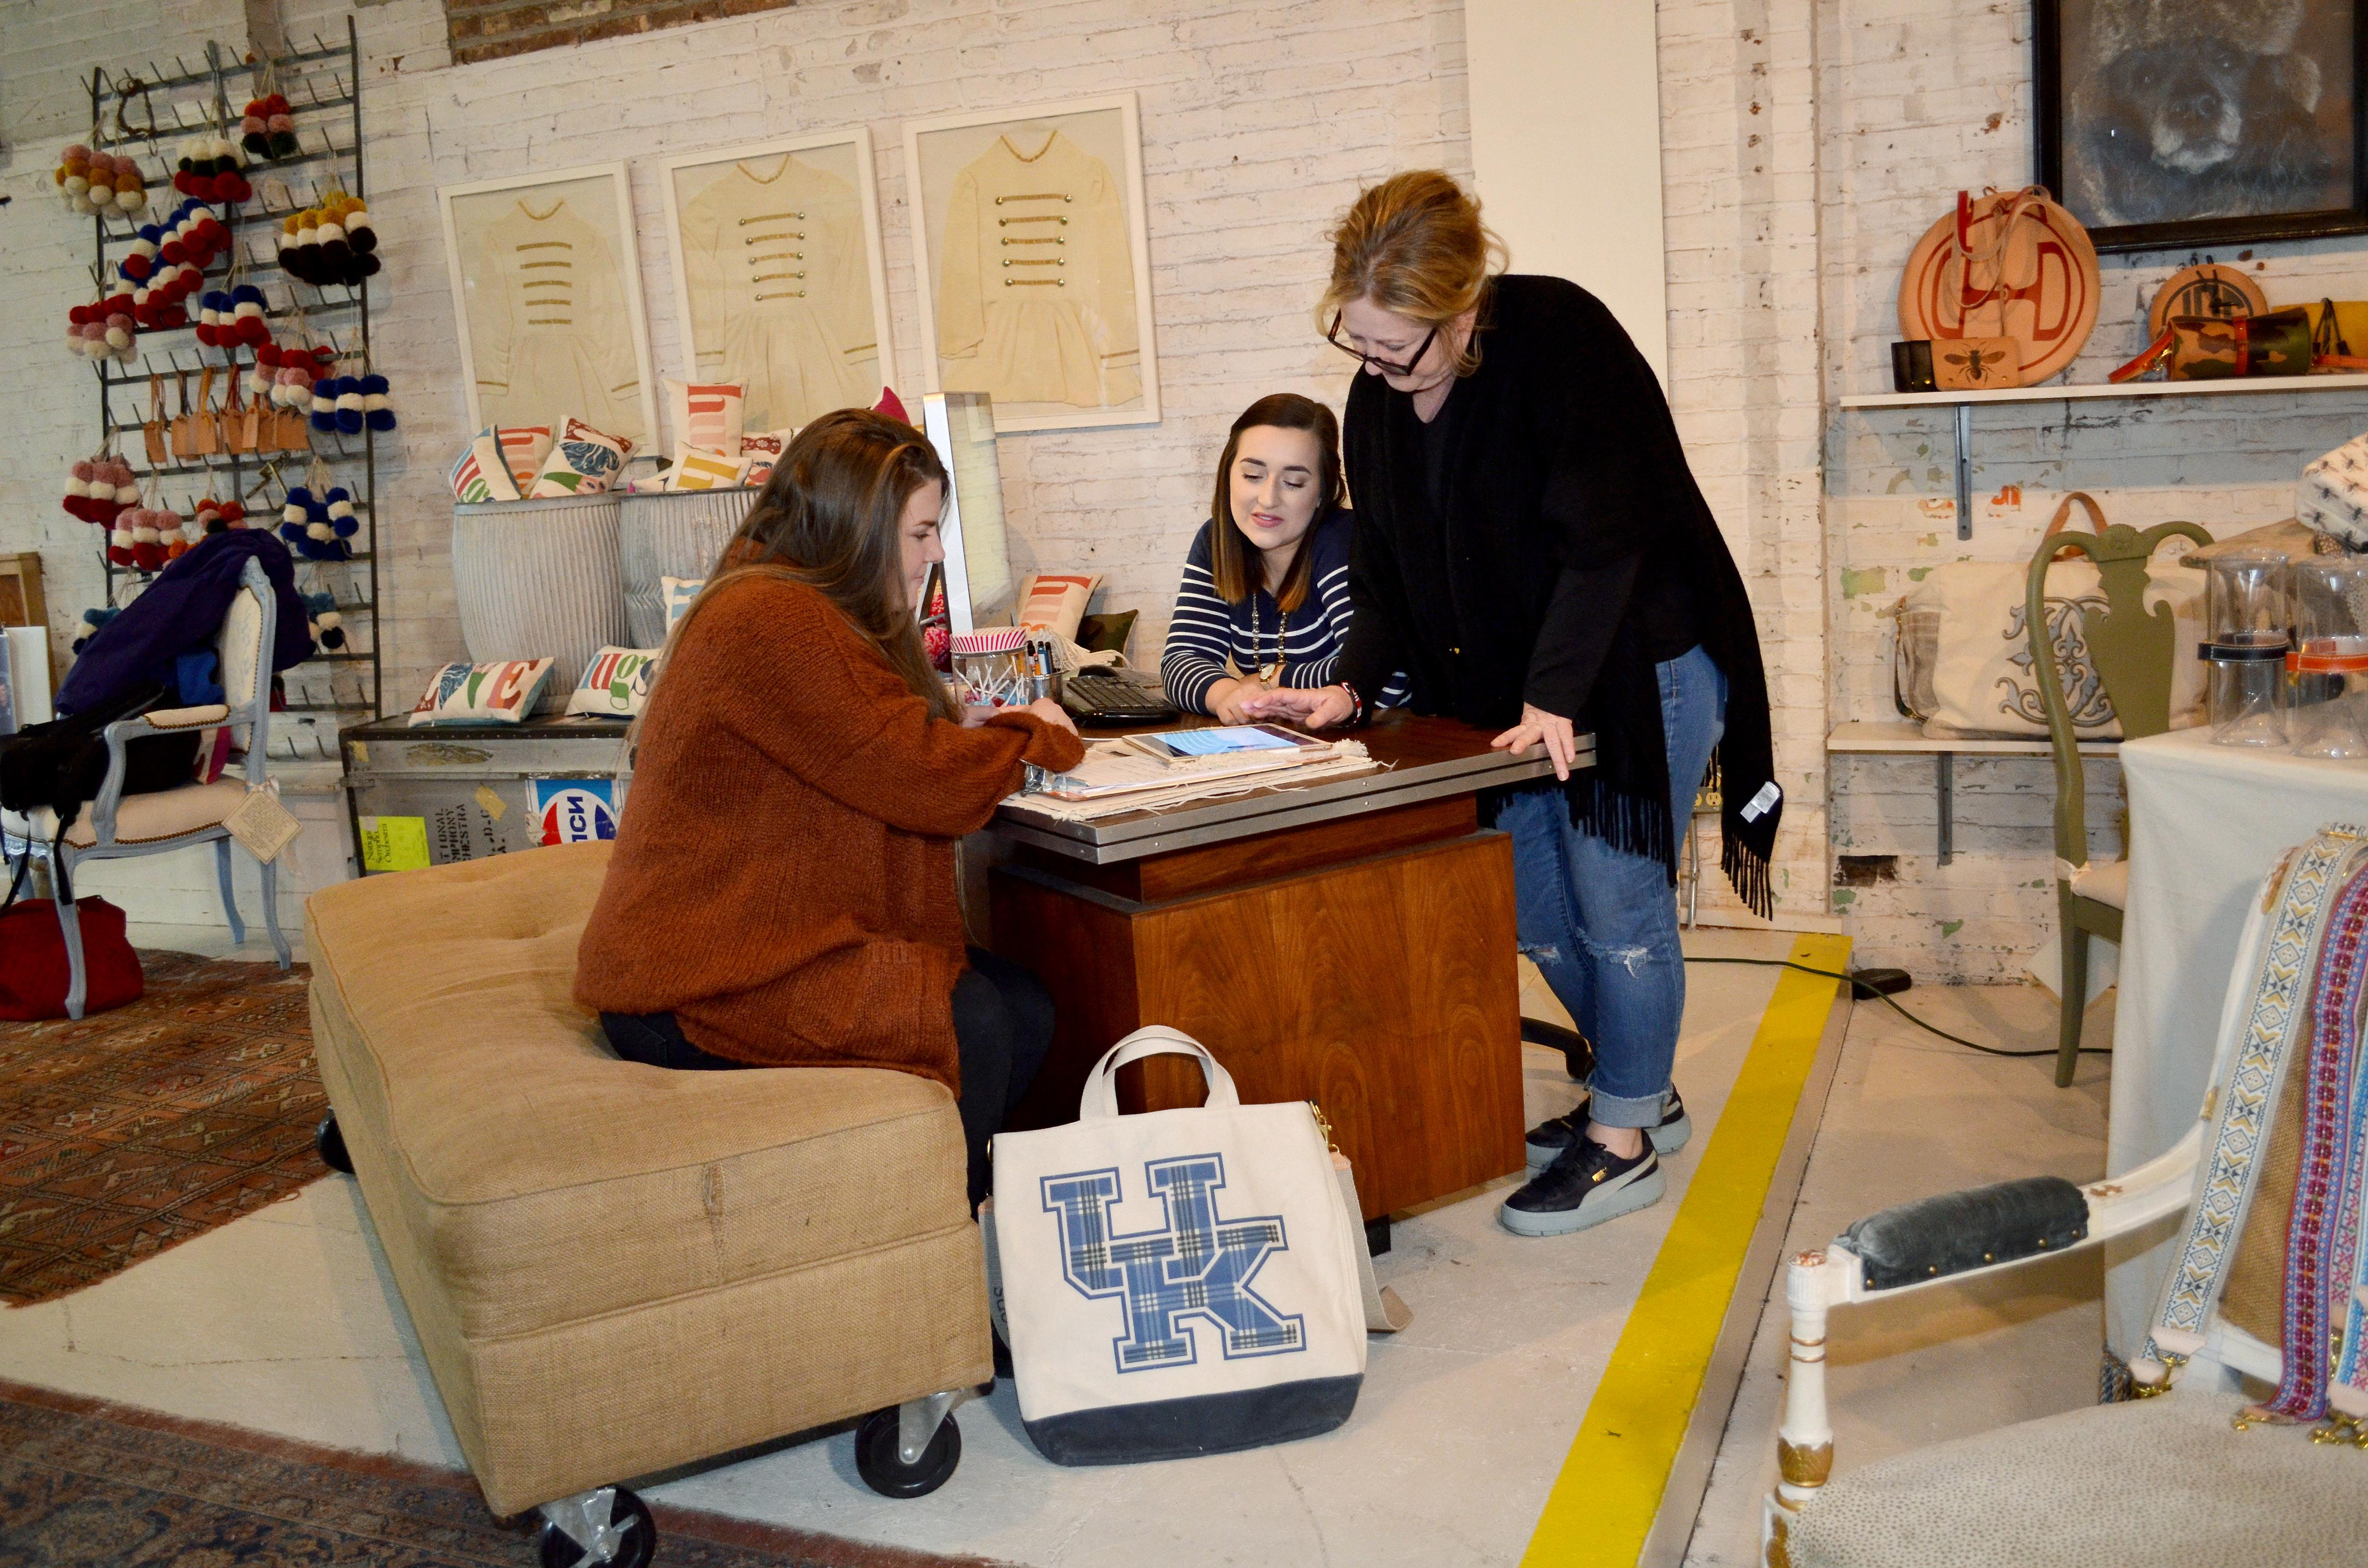 UK students Megan Stevenson, left, and Emily Stugan, center, look at Henry Dry Goods social media analytics with company owner Sherri Henry Wolf. Photo by Katie Pratt, UK agricultural communications.